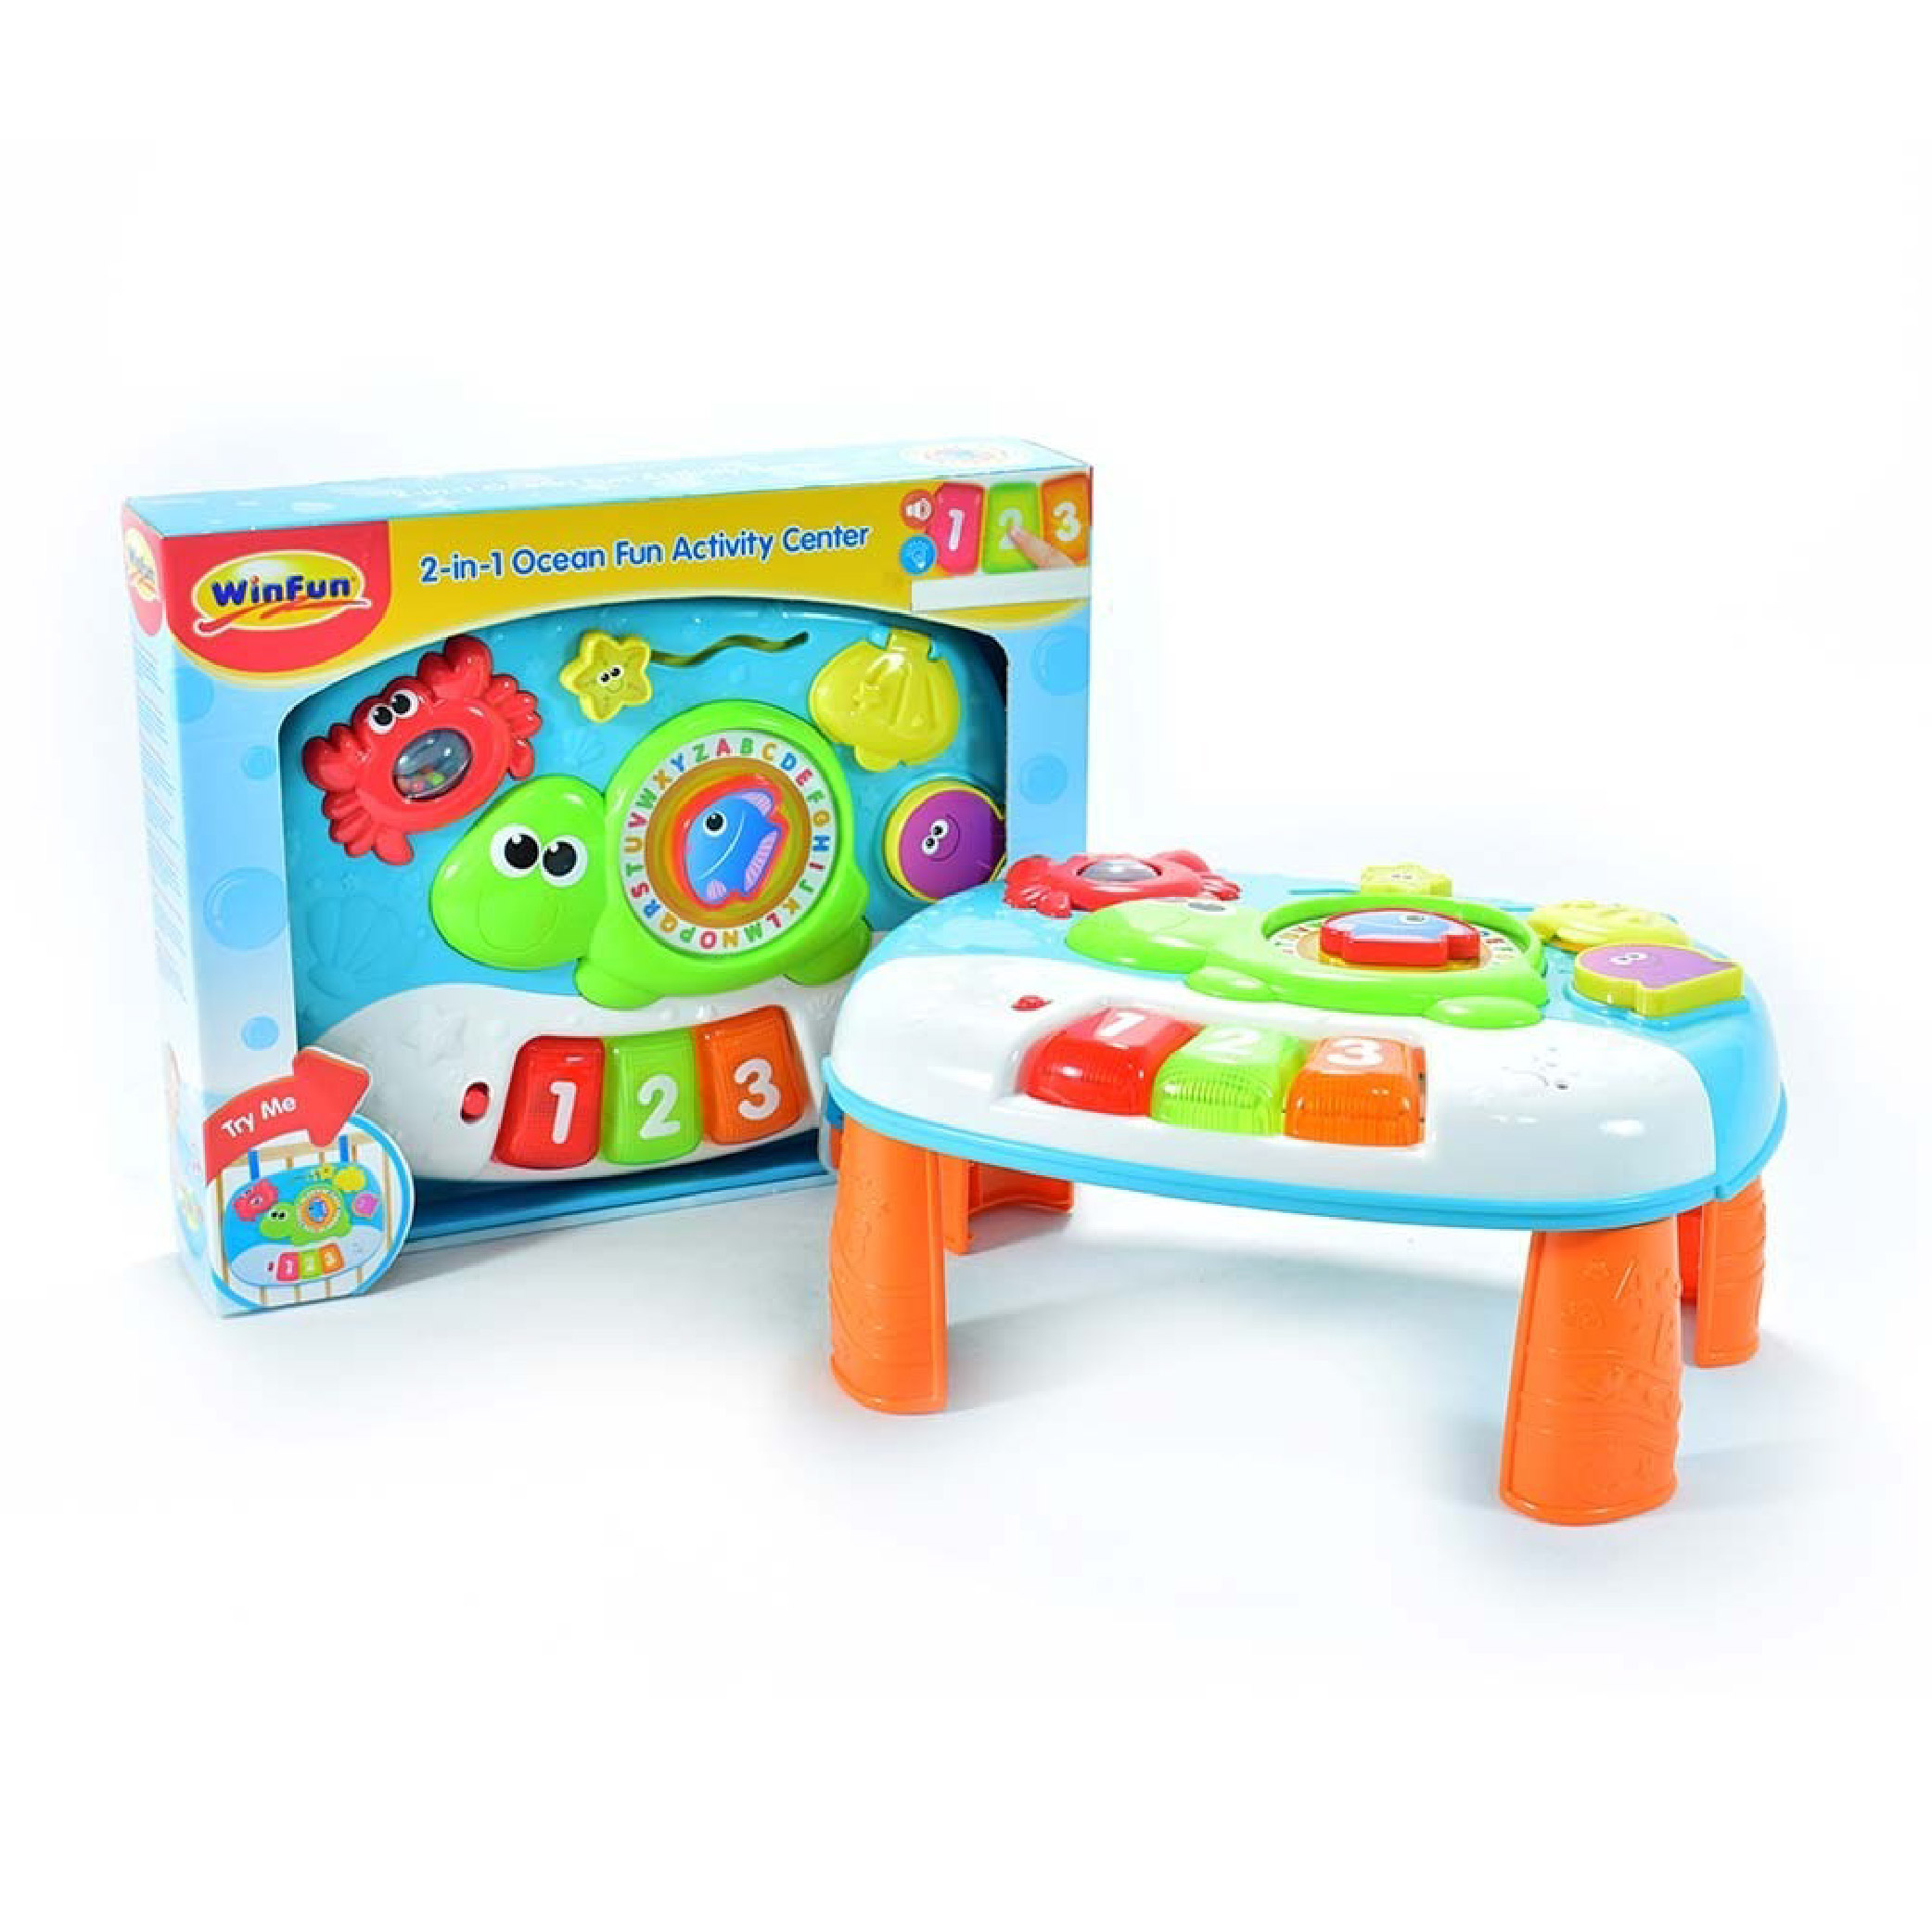 Lot 209-2_Winfun 2 in 1 Ocean Fun Activity Center-3